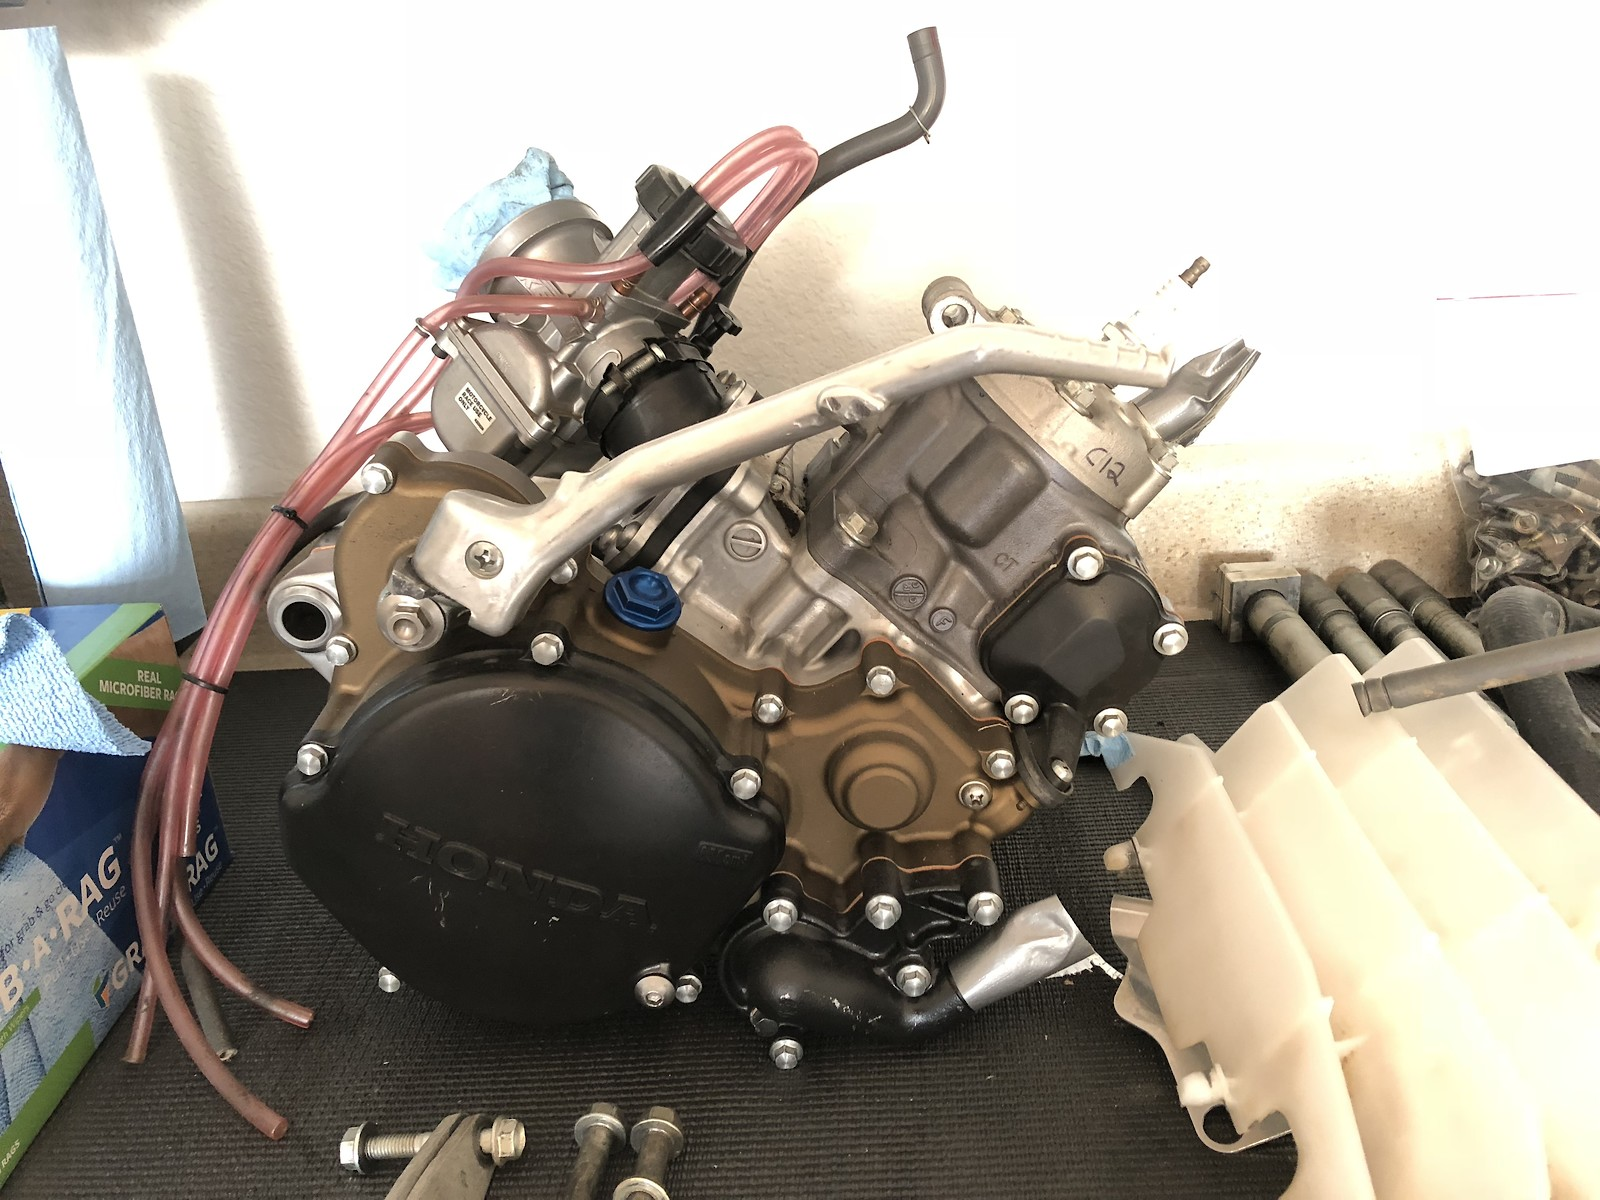 WANTED: 05-07 Honda CR125 engine or parts - For Sale/Bazaar